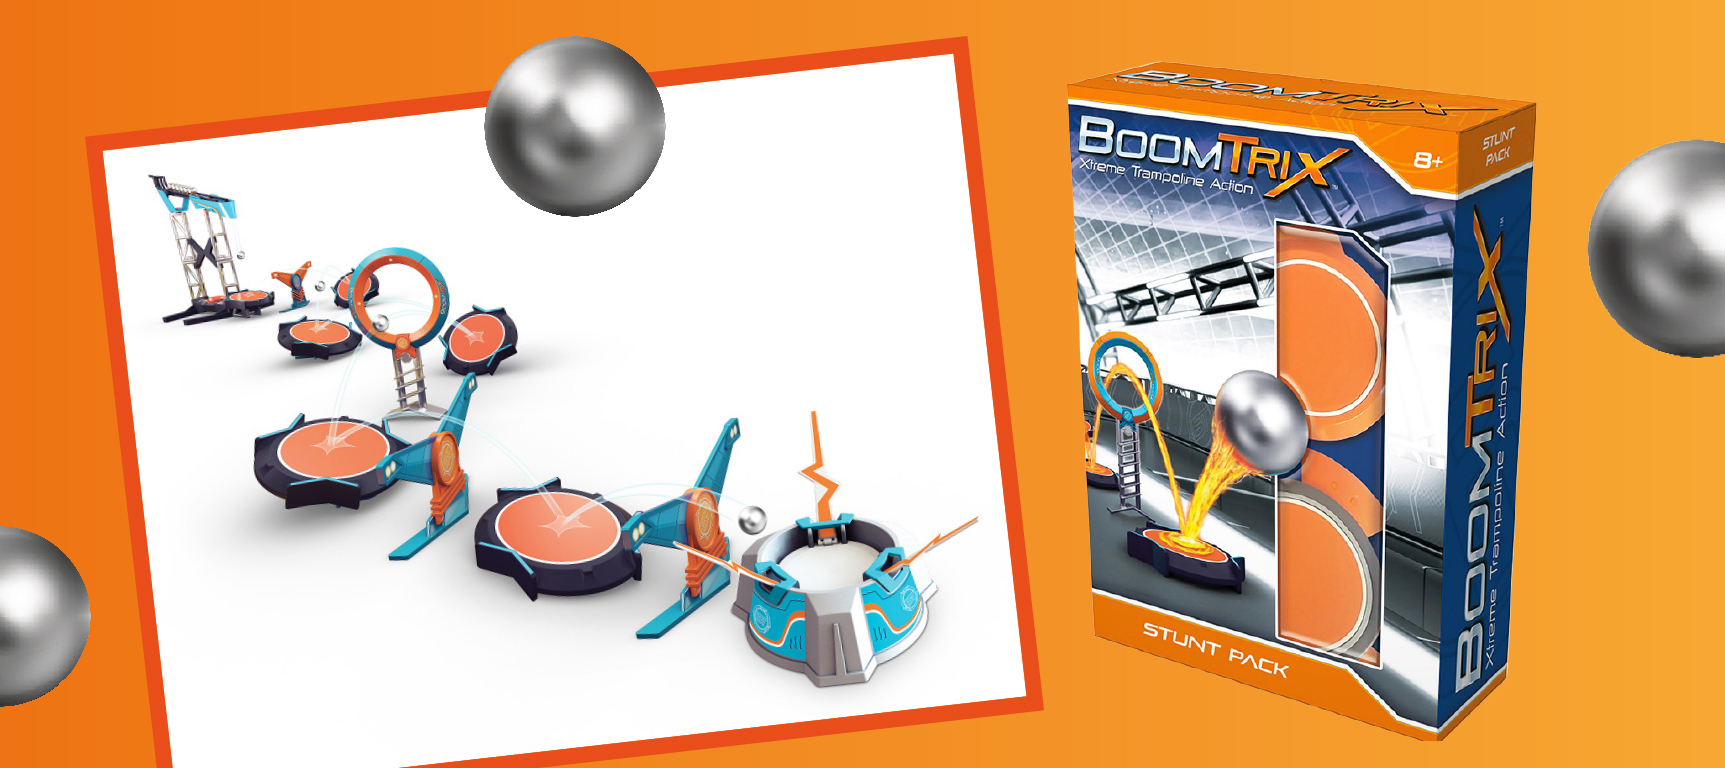 A BoomTrix Multiball and Stunt Pack